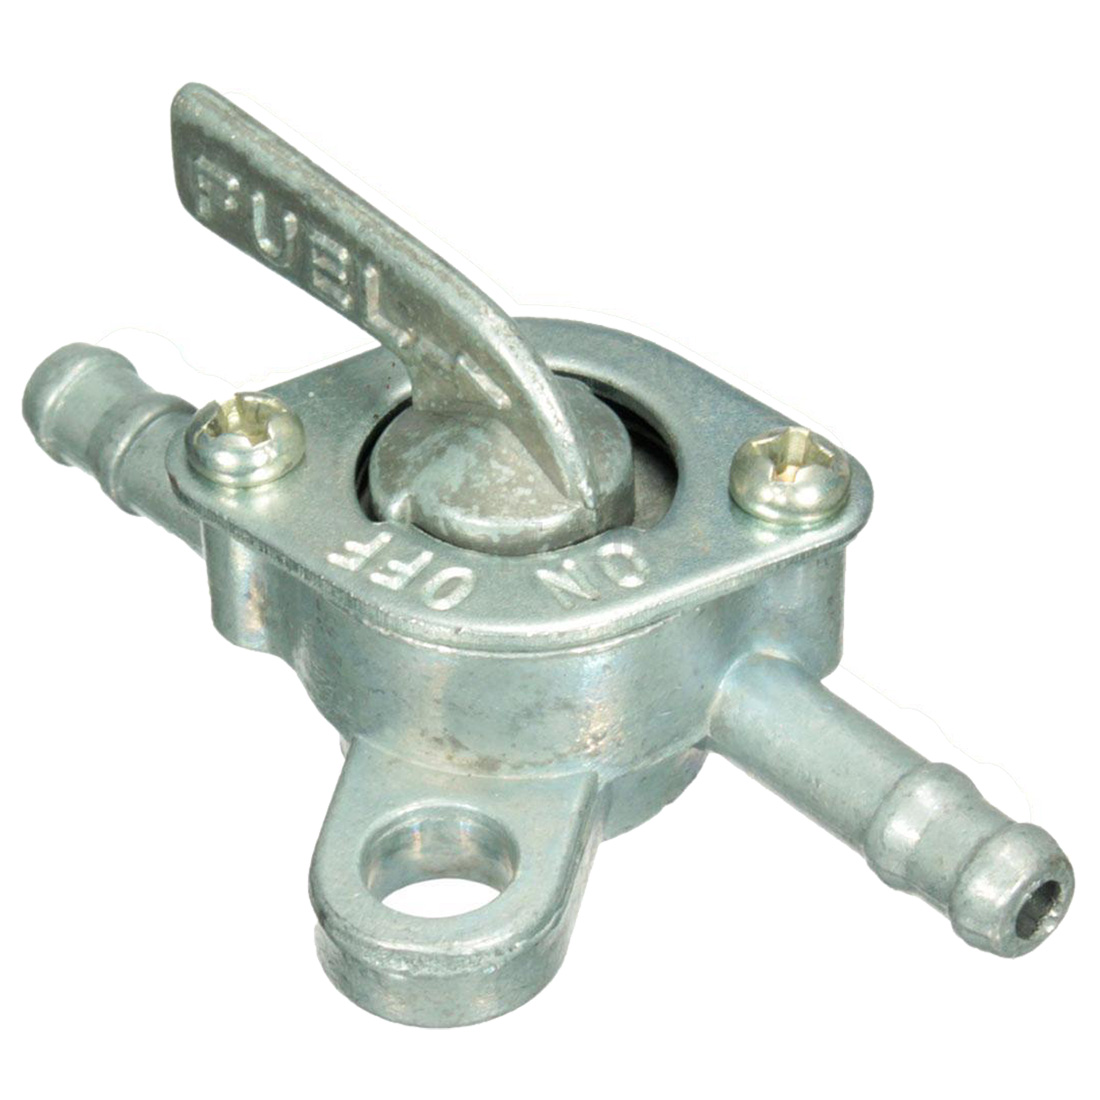 Gas Pump Valve Petcock Fuel Tank Gasoline Split Oil Switch ATV For Motorcycle GA